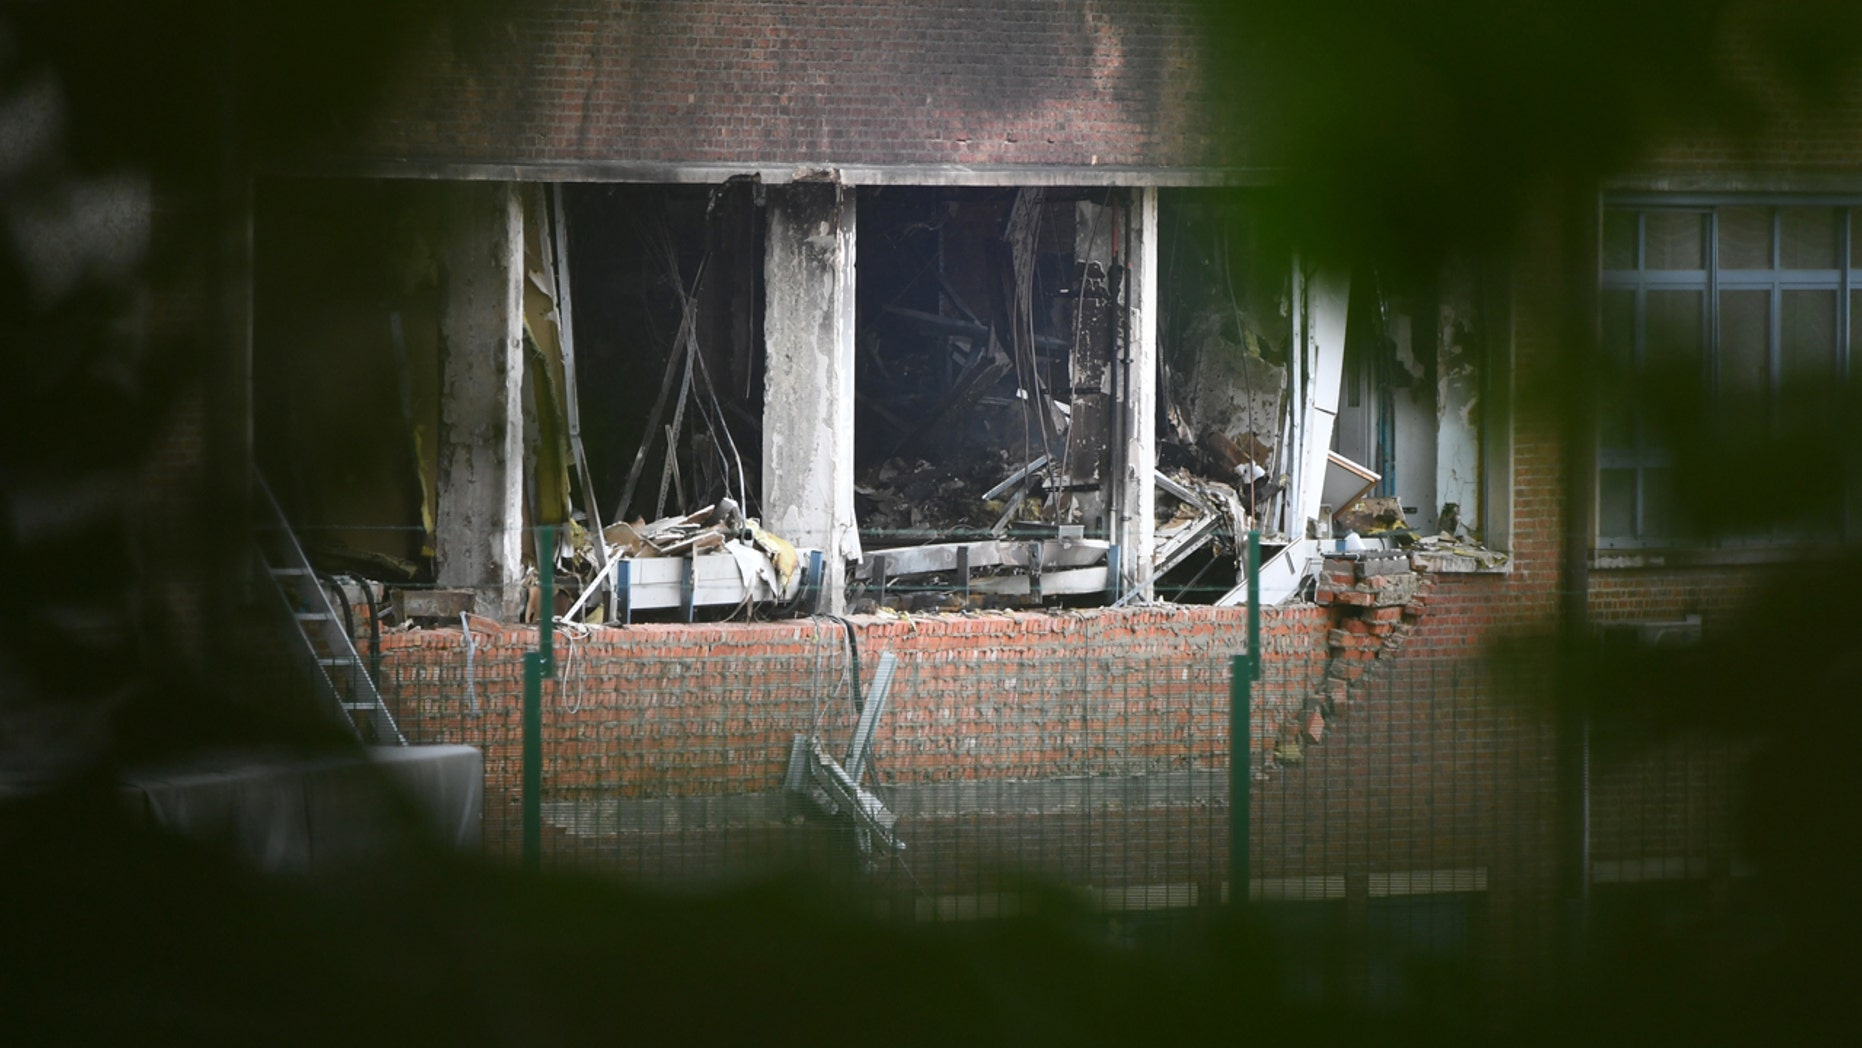 Aug. 29, 2016: Damage can be seen at Belgium's National Criminology Lab in Brussels